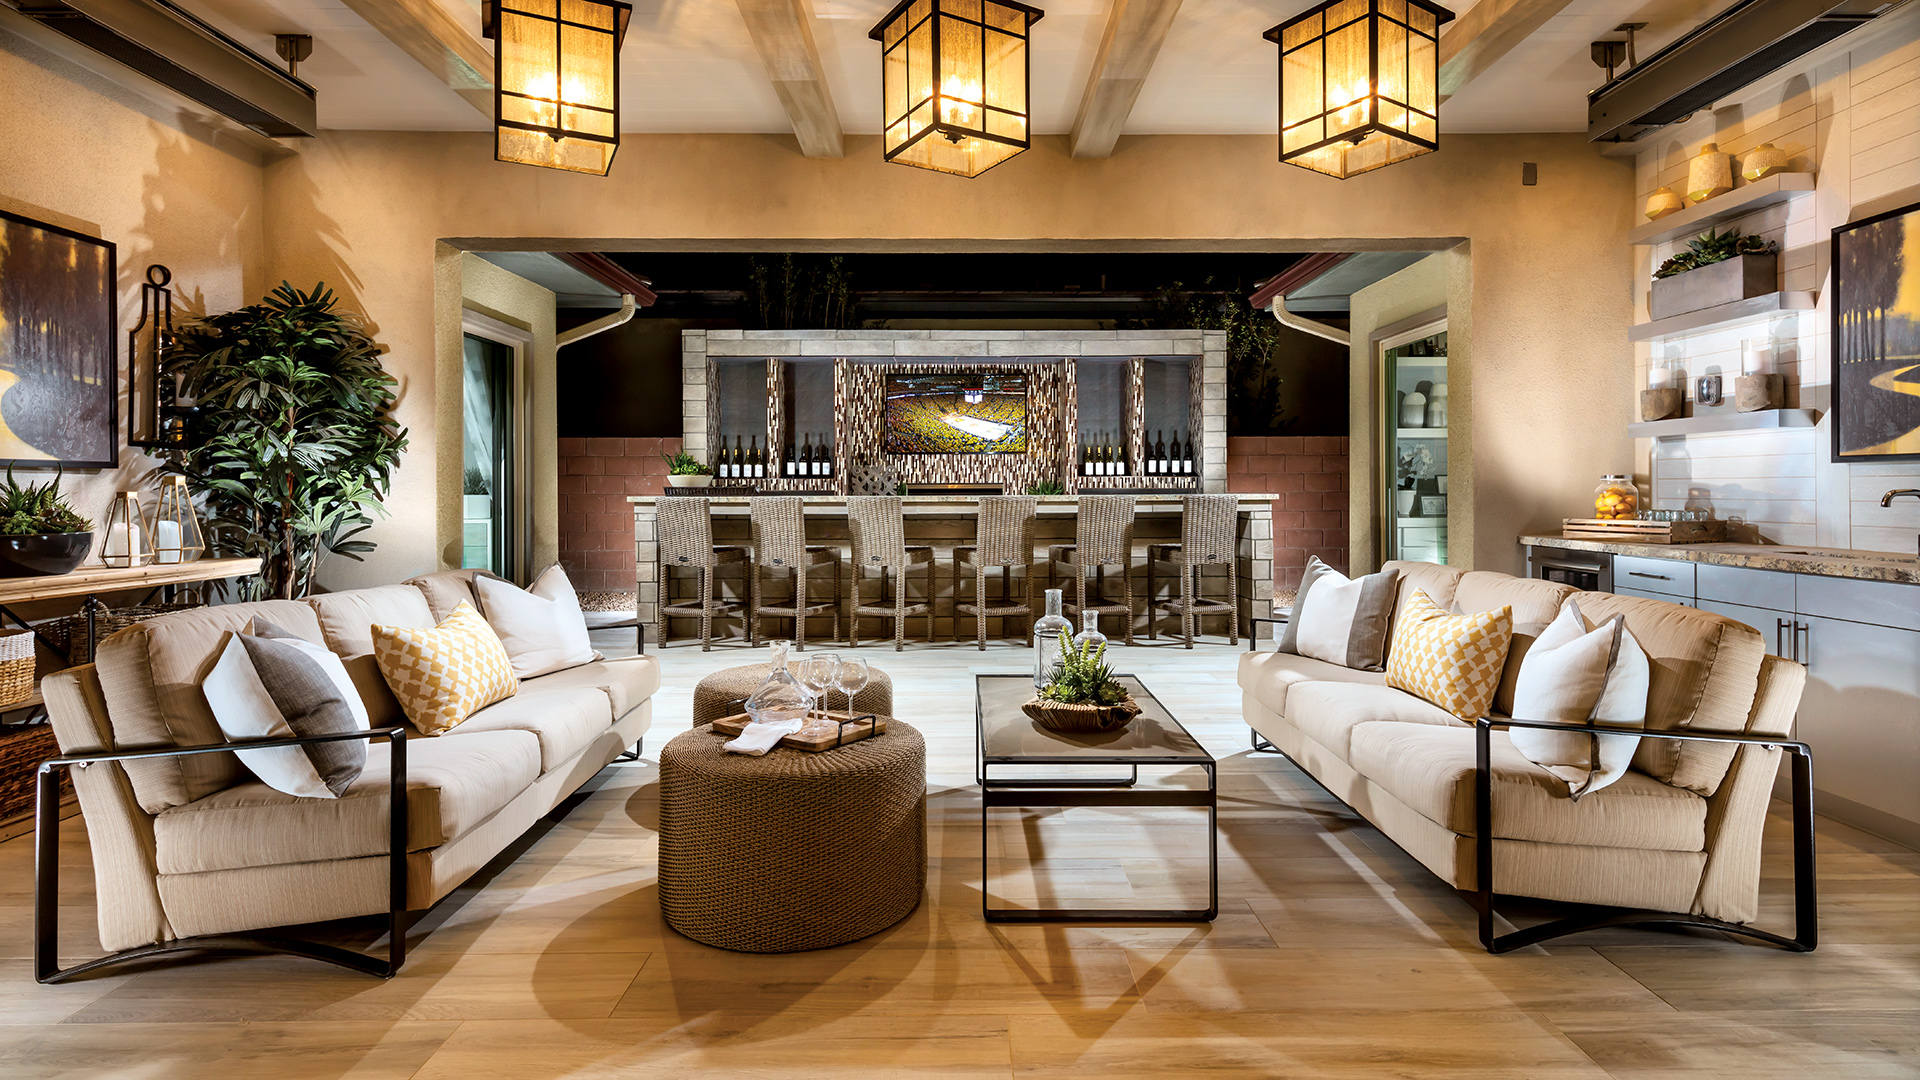 Indoor/outdoor layouts feel inviting and relaxing